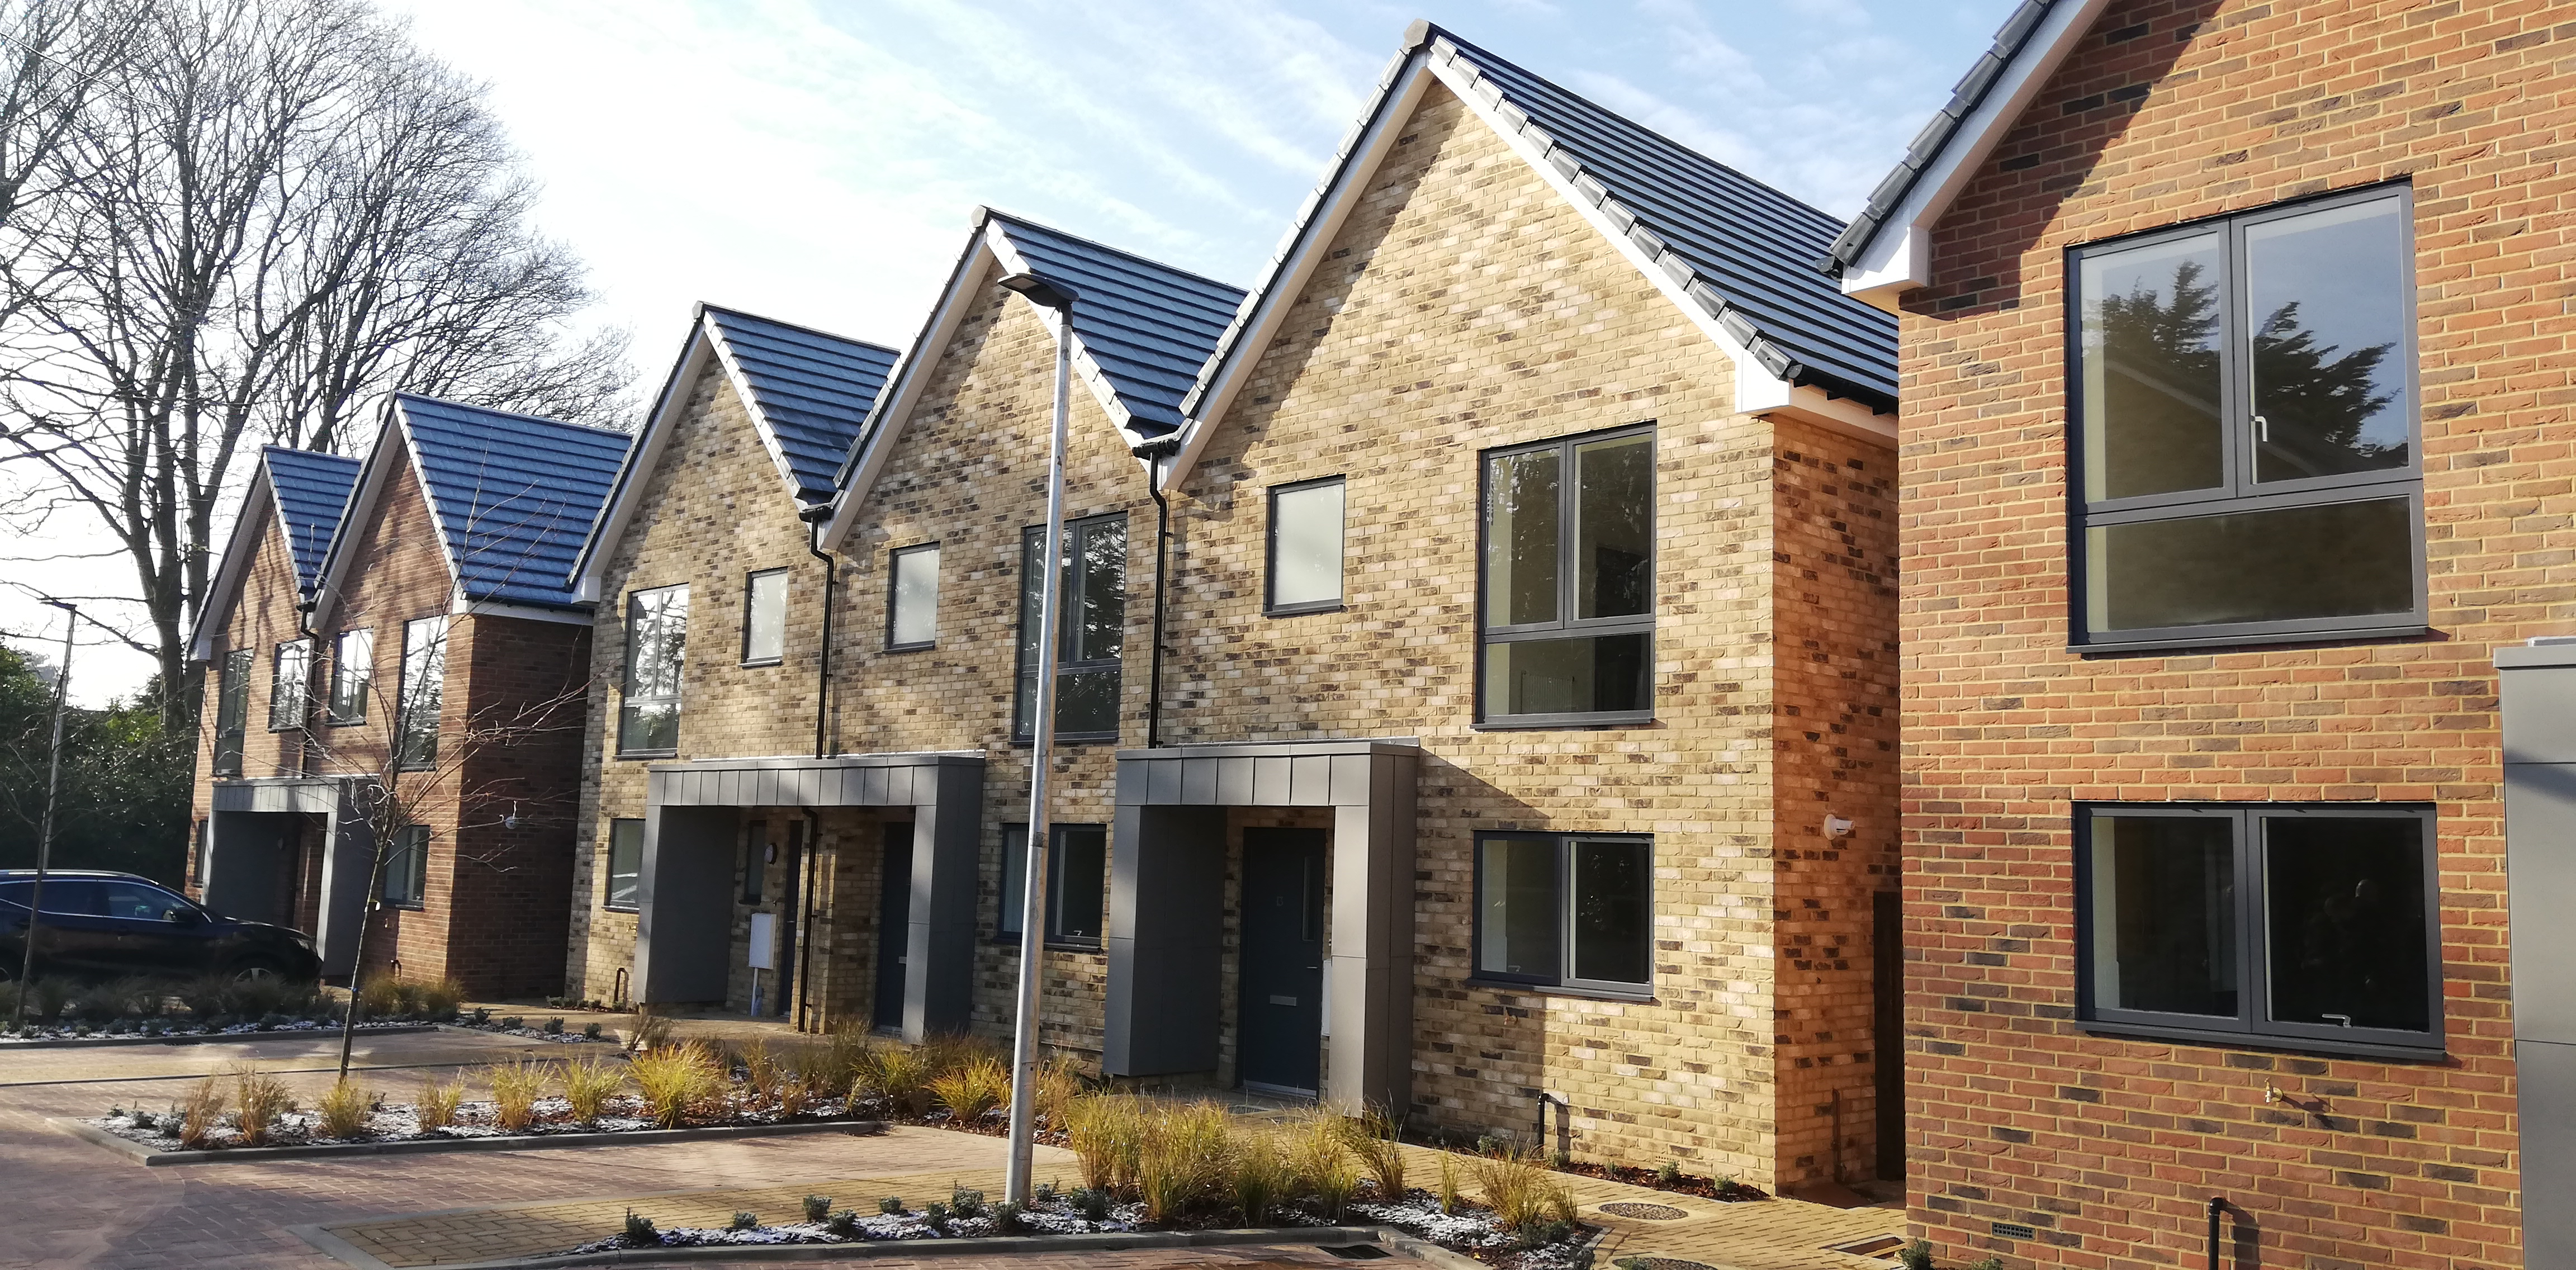 Affordable housing in St Albans